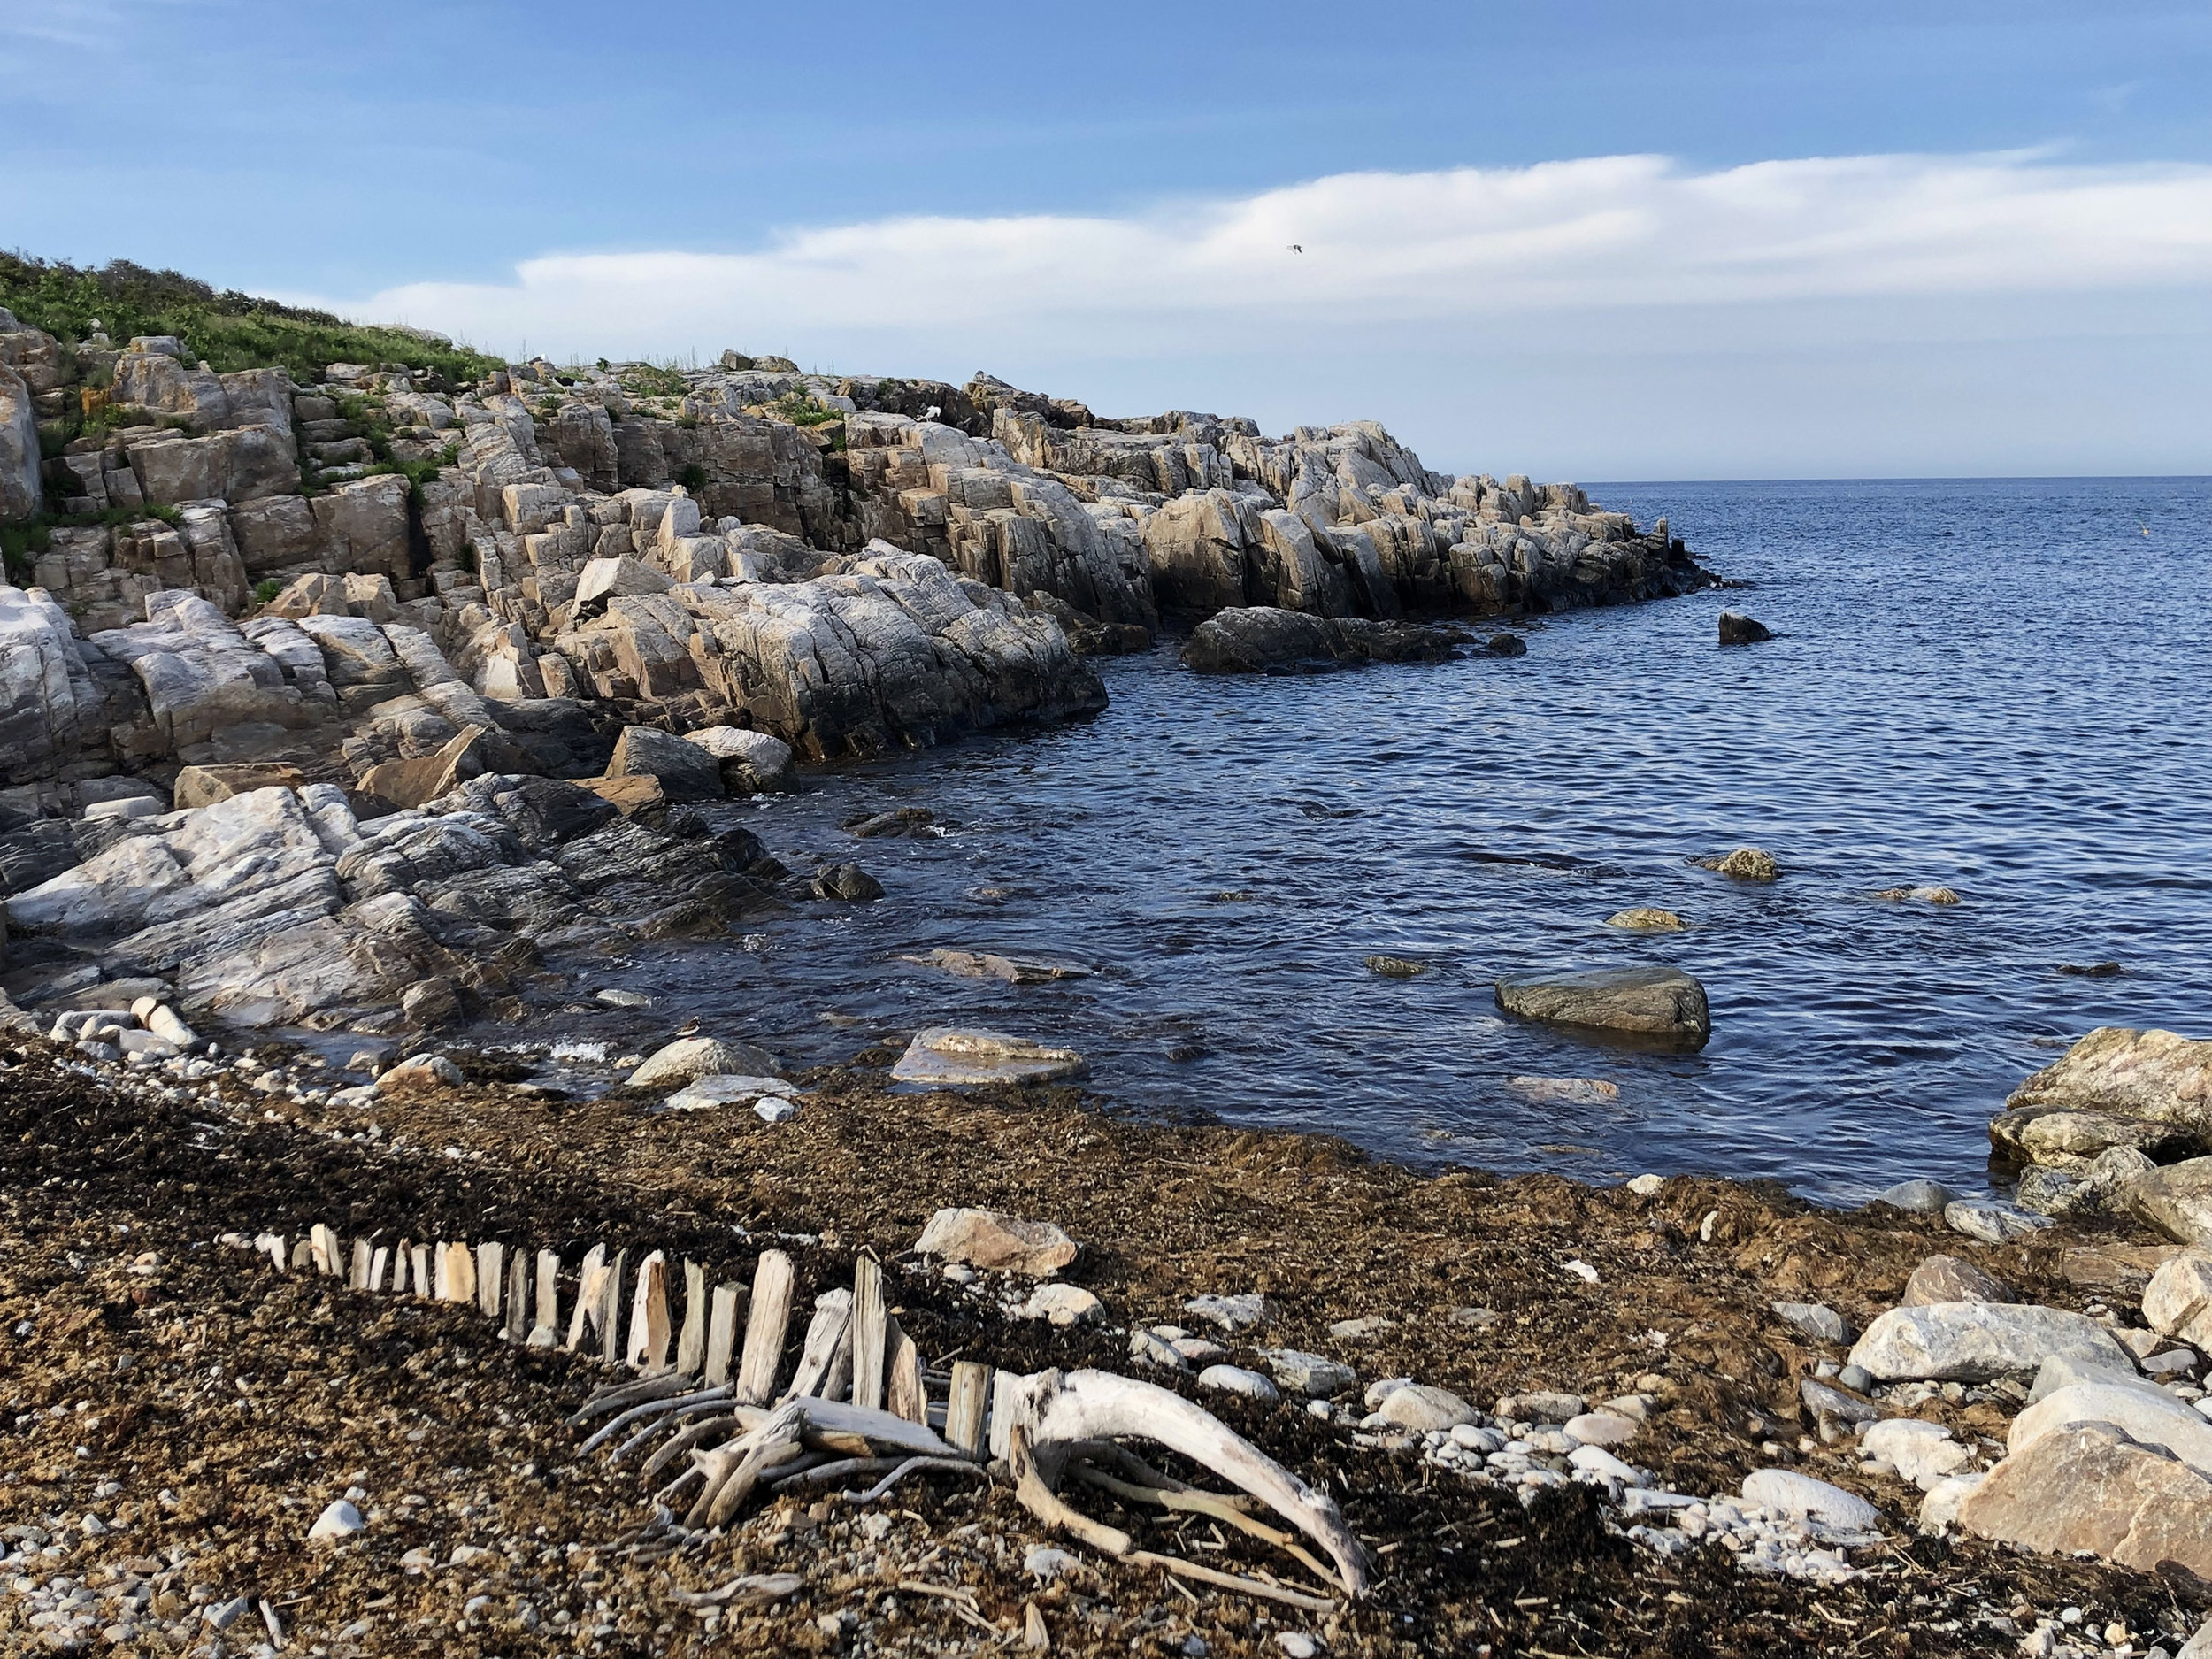 Right Whale Driftwood Skeleton    driftwood  approx. 9' x 2.5'  assembled on location at Broad Cove, Appledore Island, Isles of Shoals, Maine. June 2019.